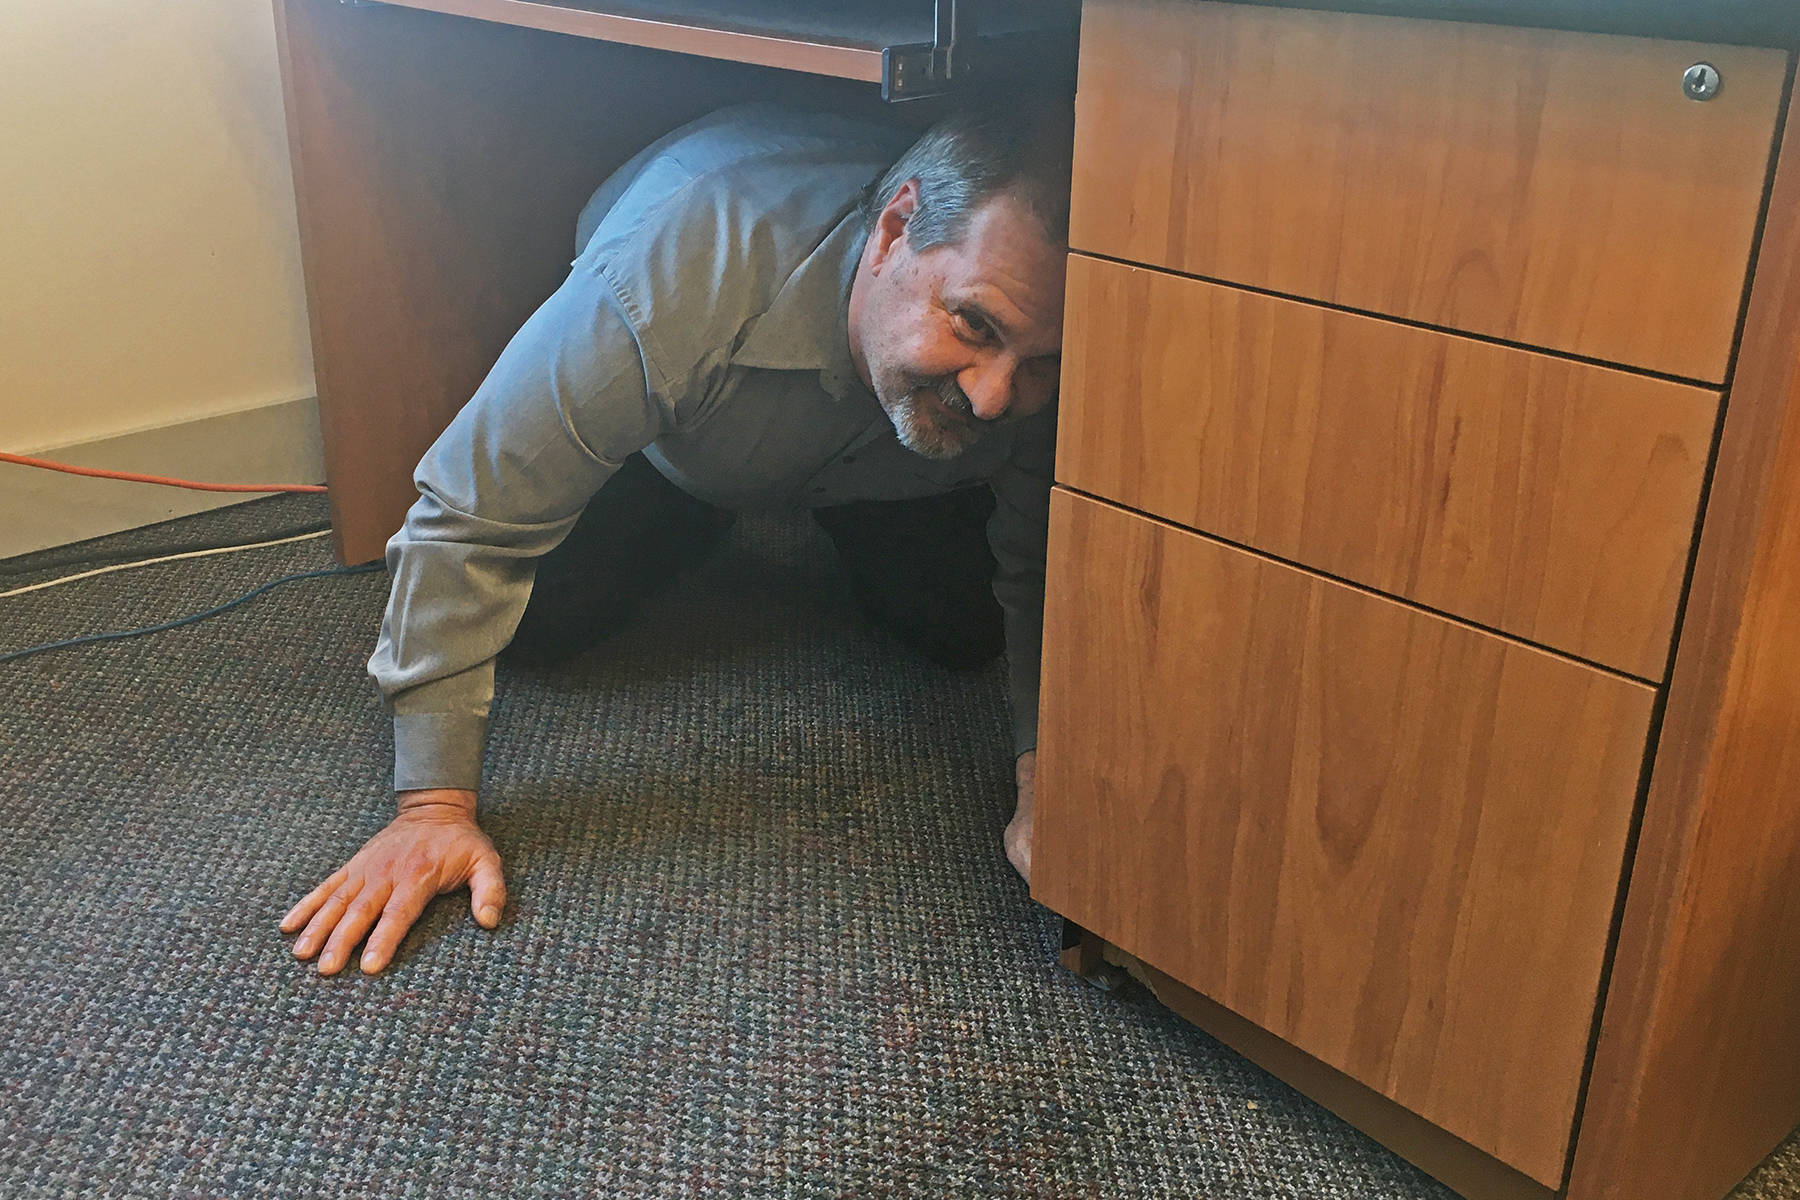 Offices, schools, homes and more offer protection in the event of an earthquake. The Great BC ShakeOut is slated for Oct. 15, but individuals and socially distanced groups can practice earthquake drills anytime. (Black Press media file photo)